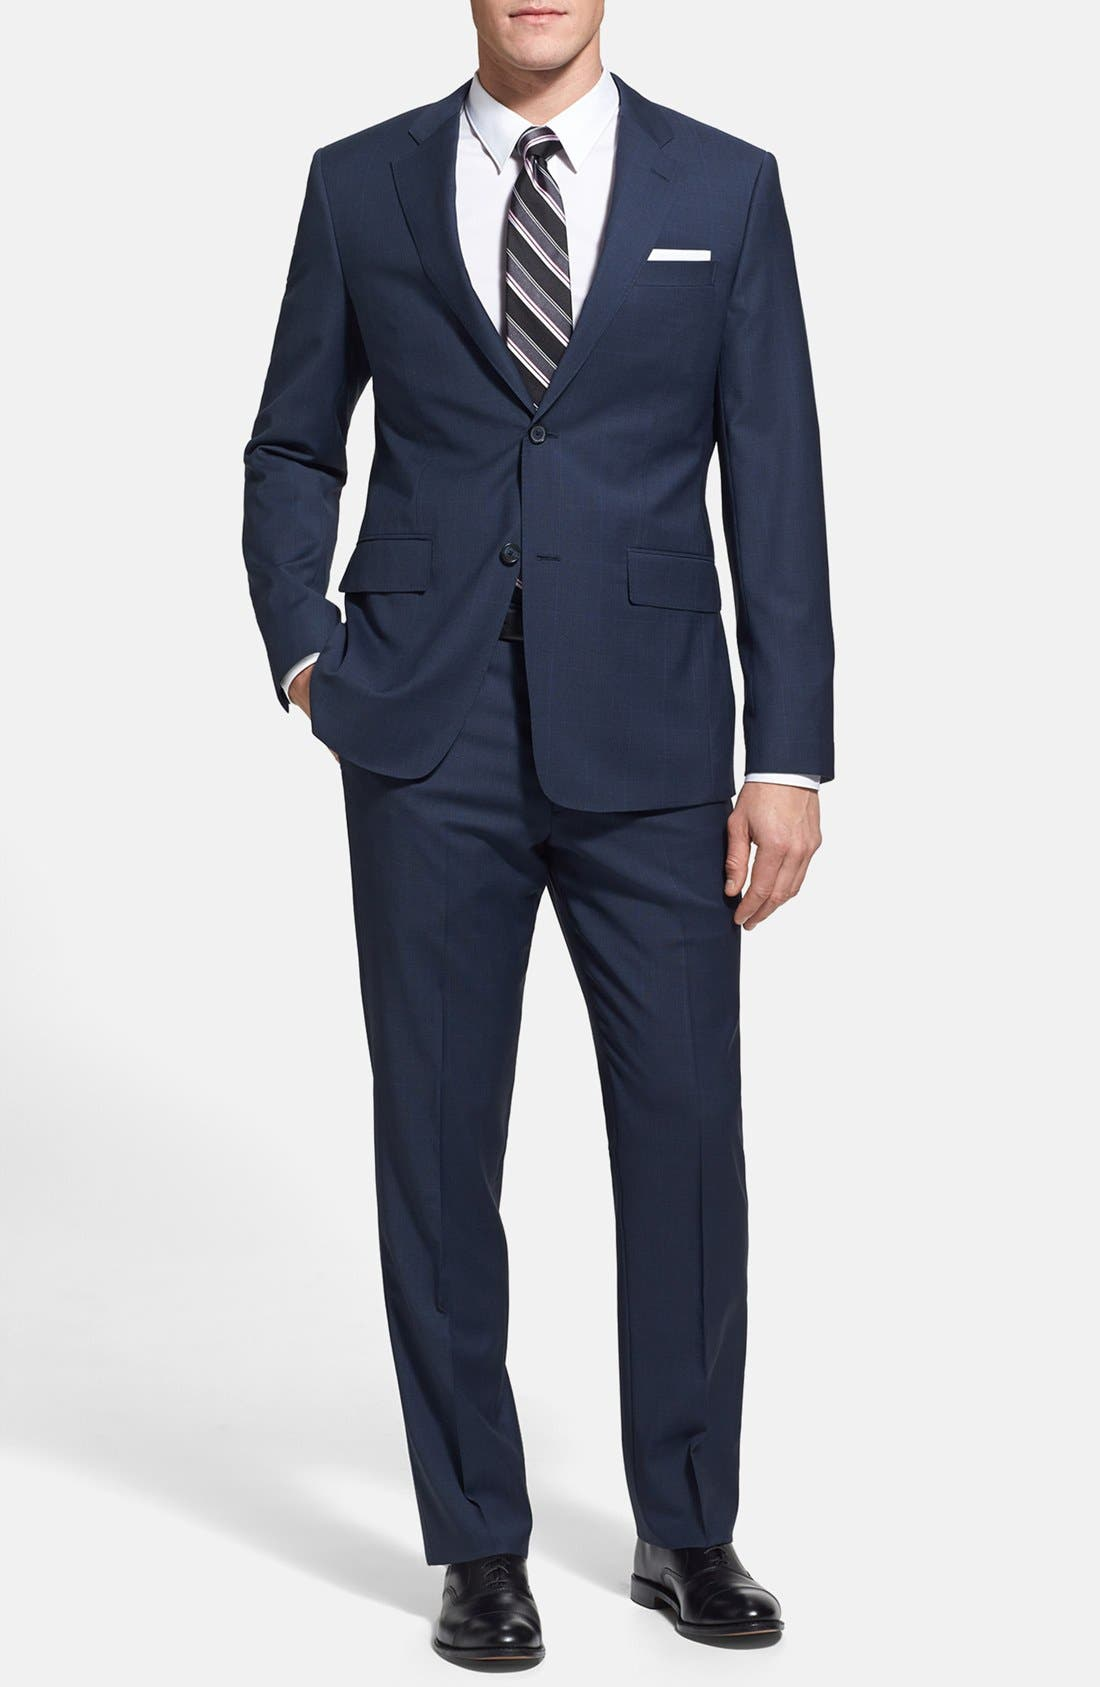 Main Image - John W. Nordstrom® Classic Fit Windowpane Wrinkle Free Travel Suit